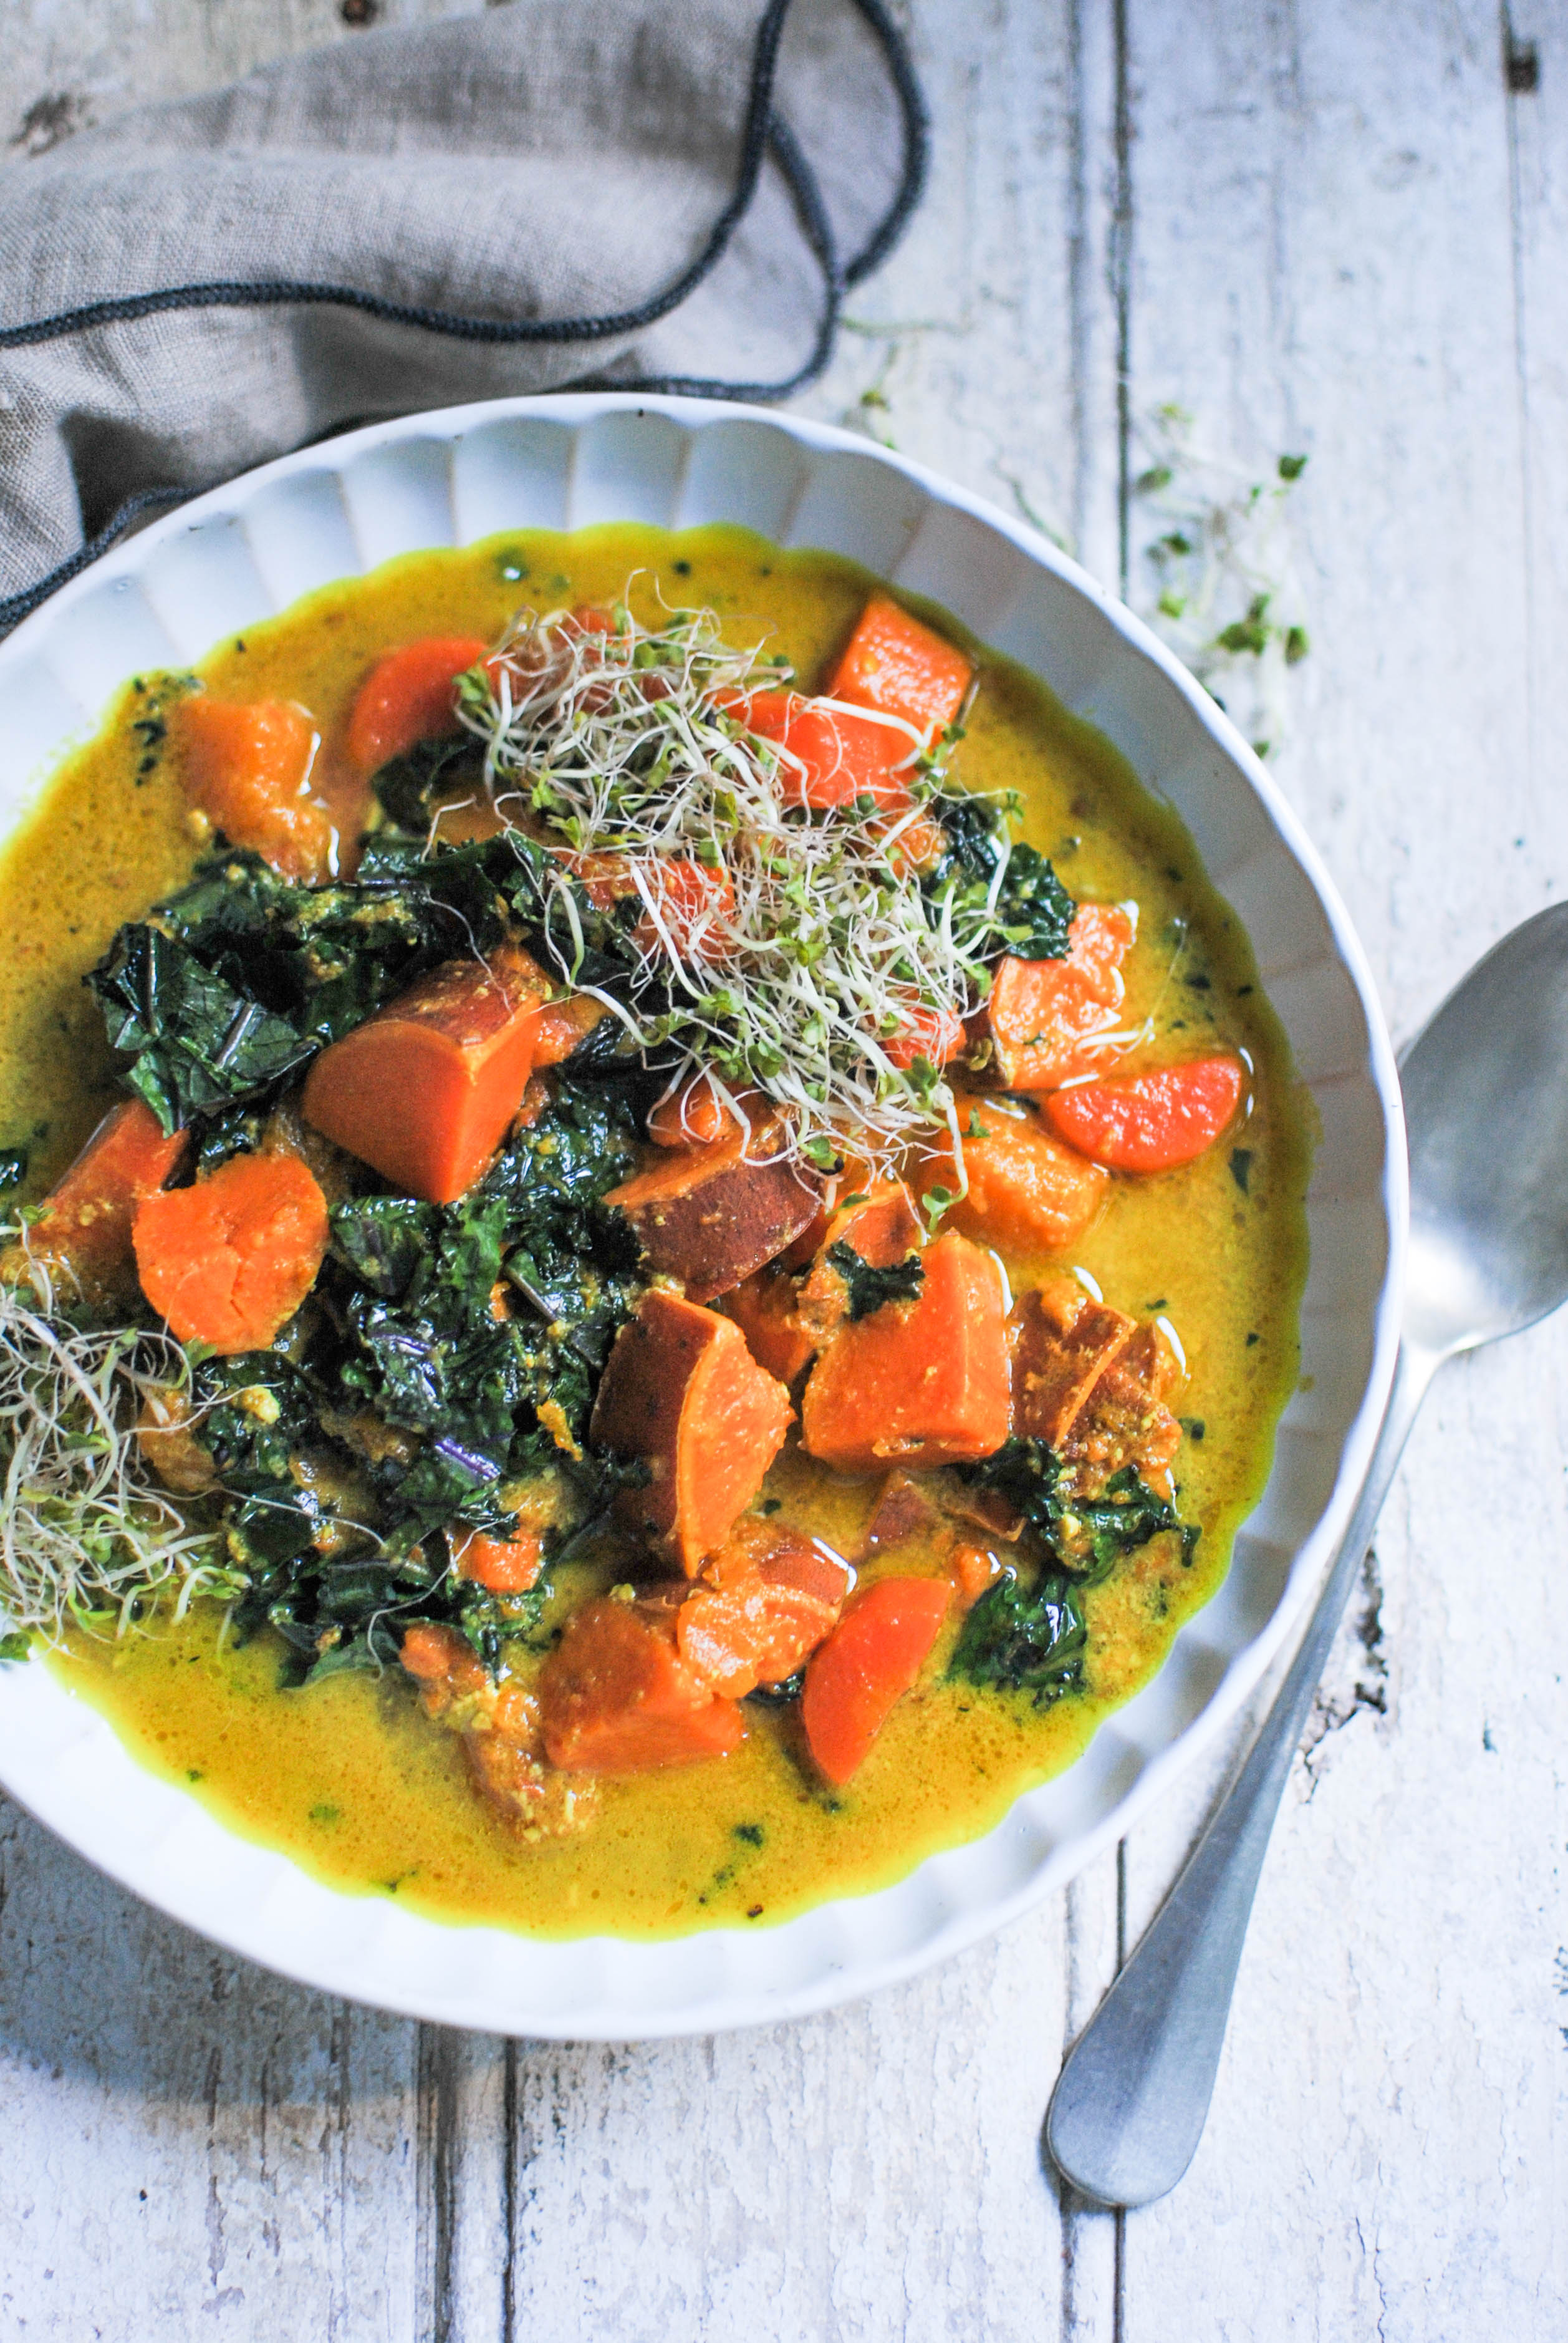 super flavouful and easy curry soup with seasonal ingredients like sweet potato, kale, carrot and pumpkin